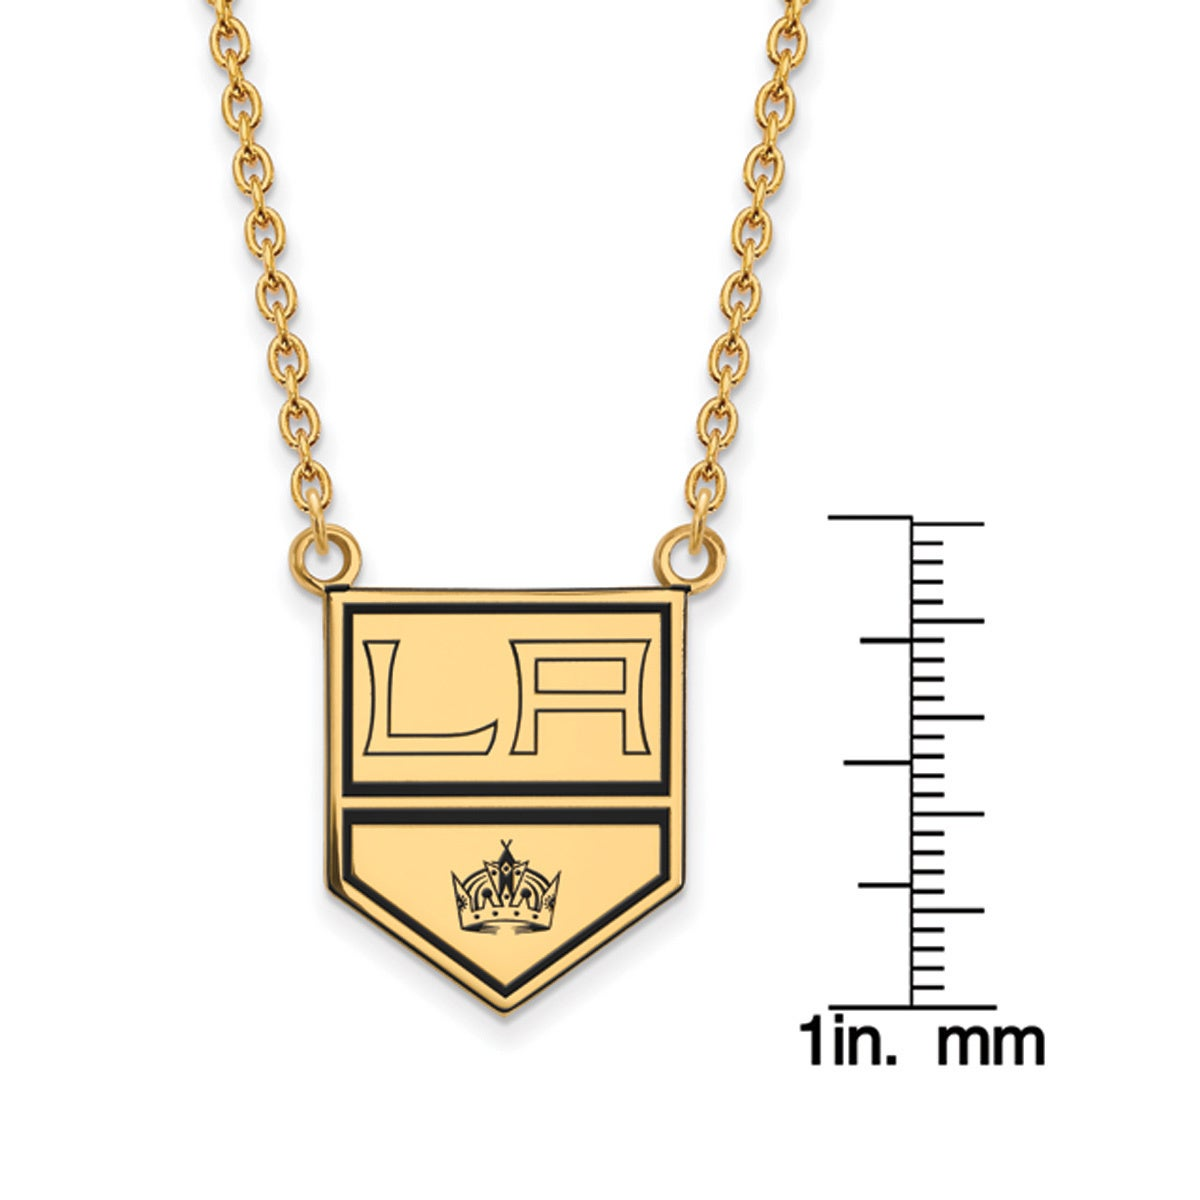 969bcbb8 Shop Versil Sterling Silver with Gold Plating NHL LogoArt Los Angeles Kings  Large Enamel Pendant with Necklace - Free Shipping Today - Overstock -  15856741